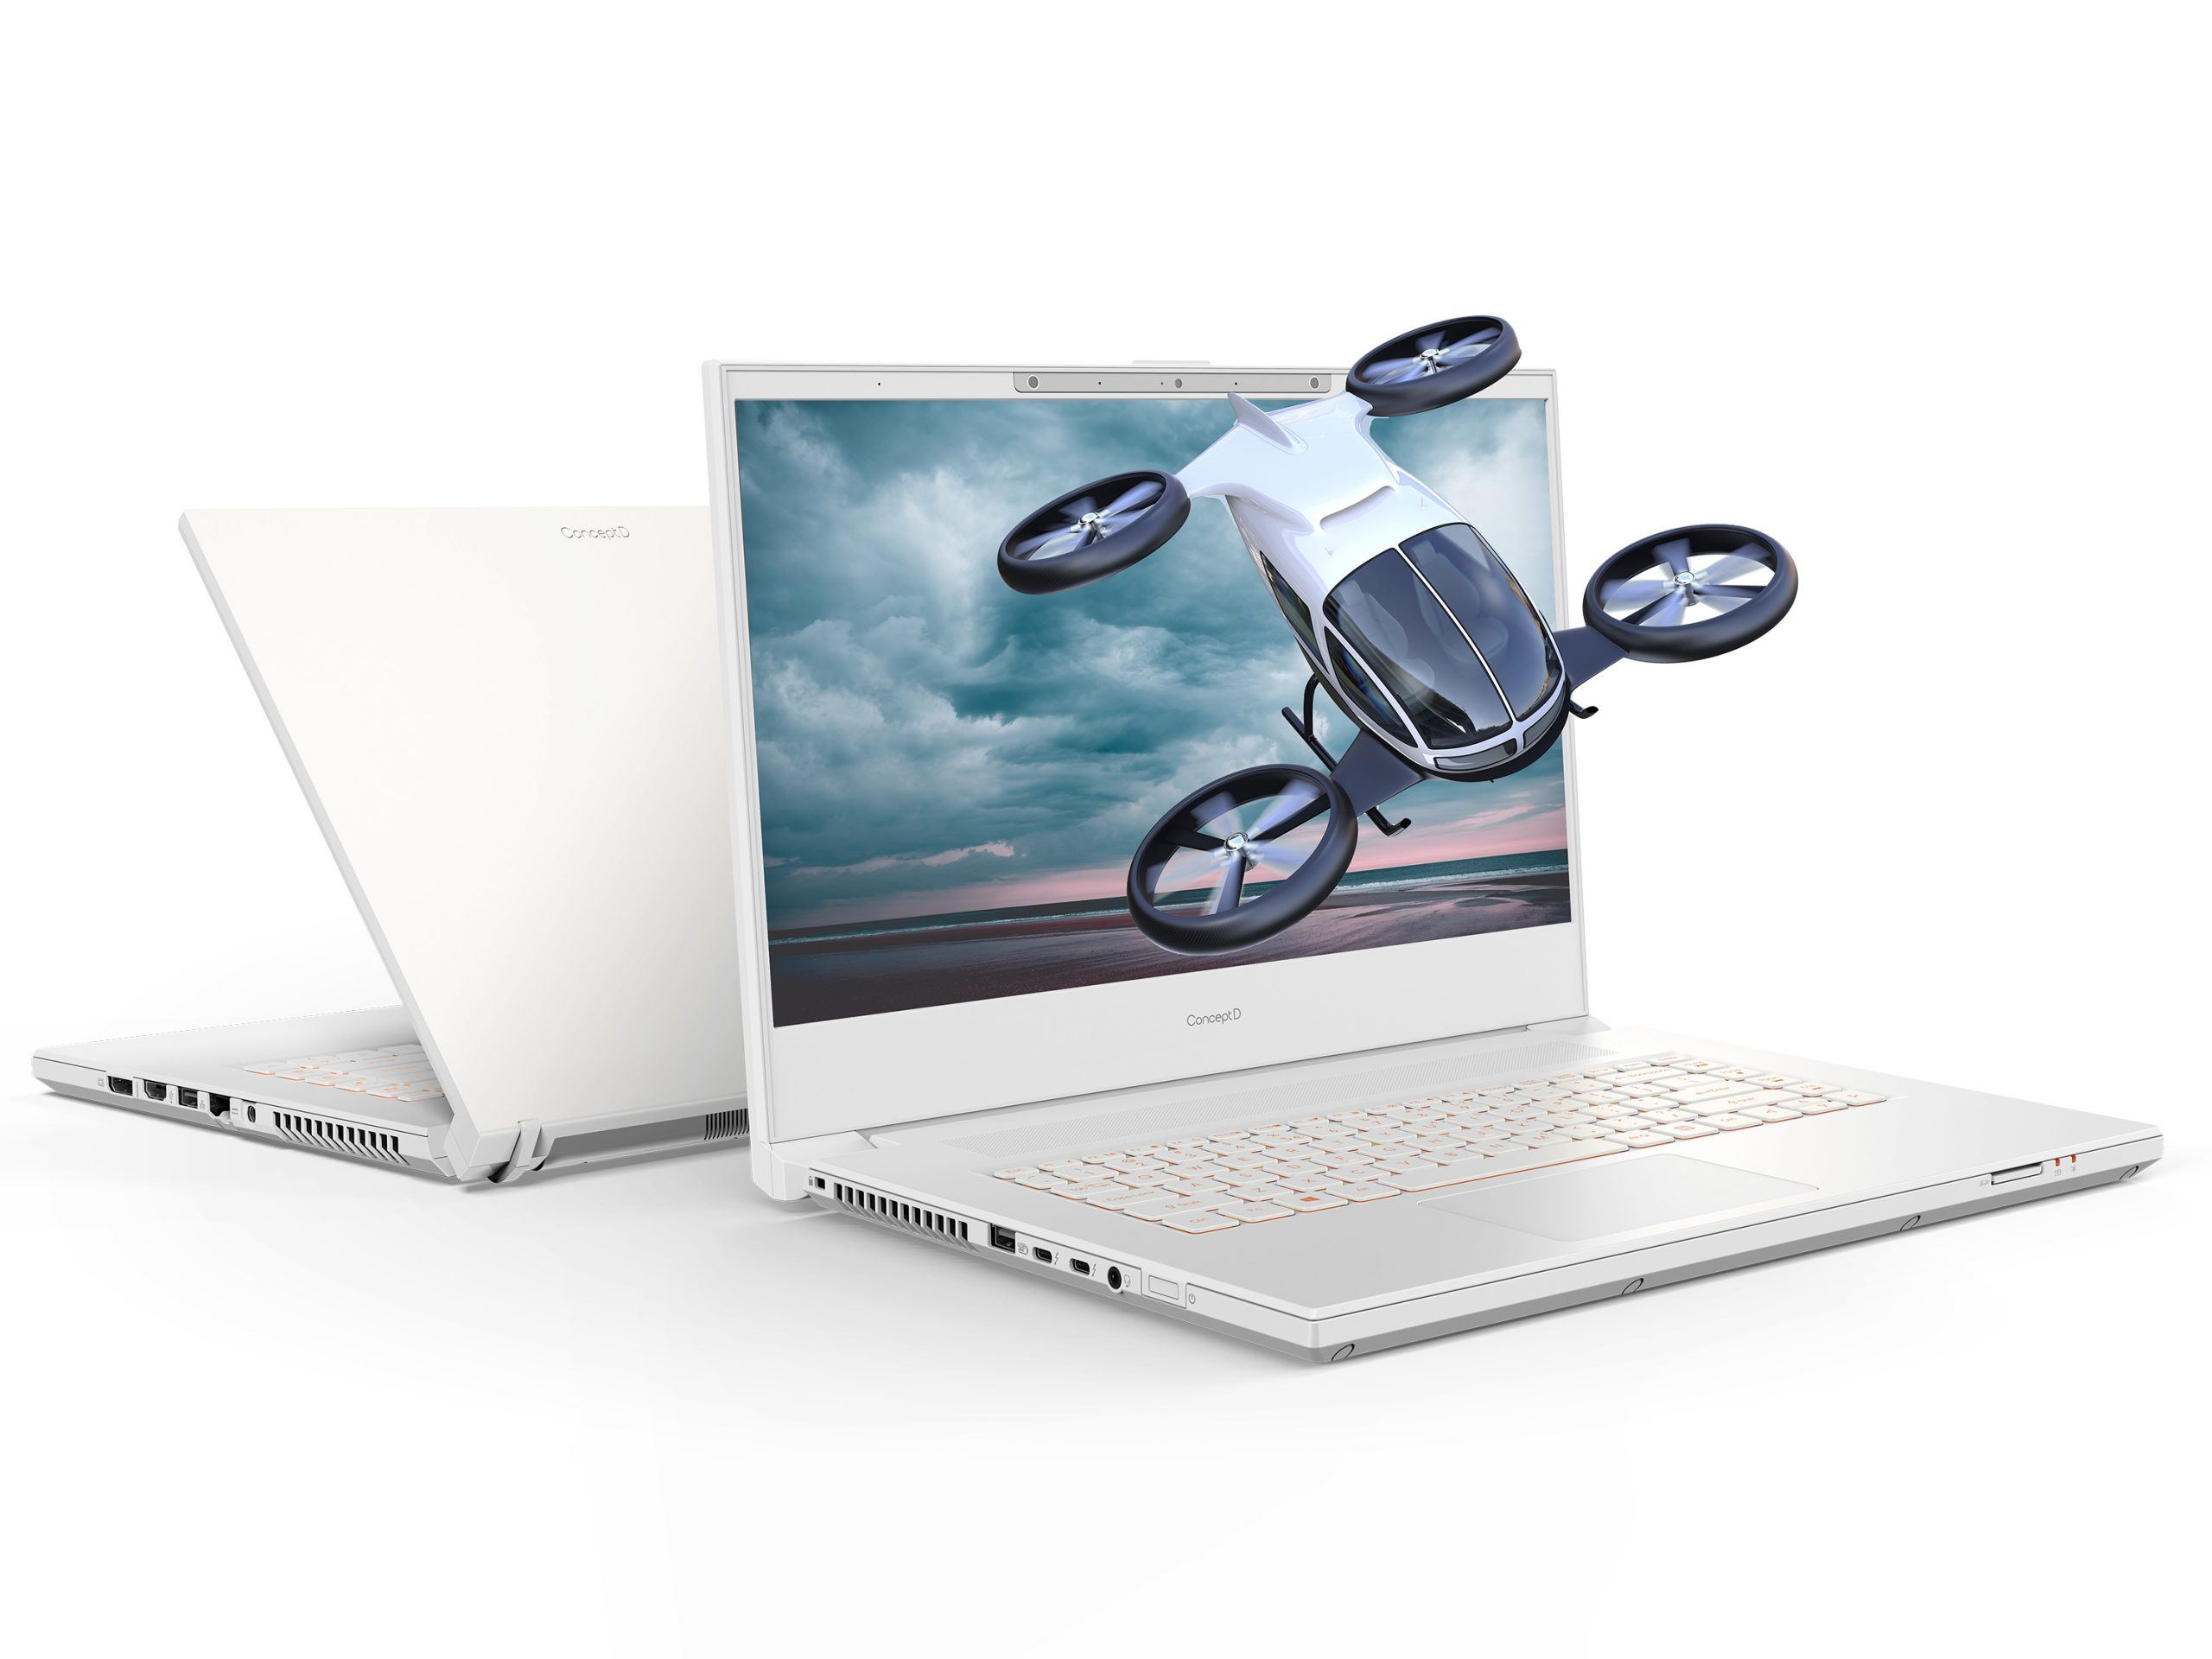 the new Acer Conecpt D7 laptop with Spatial Lab Visualization technology